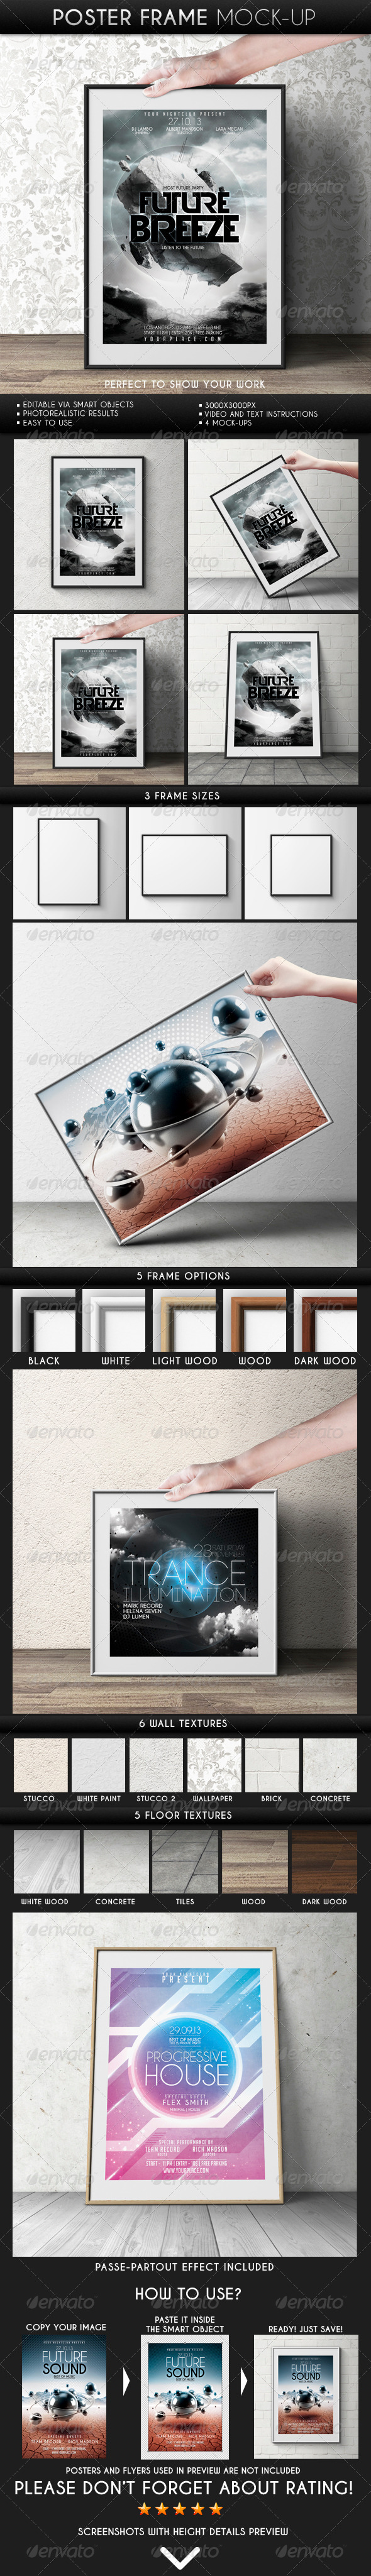 GraphicRiver Poster Frame Mock-Up 6753113